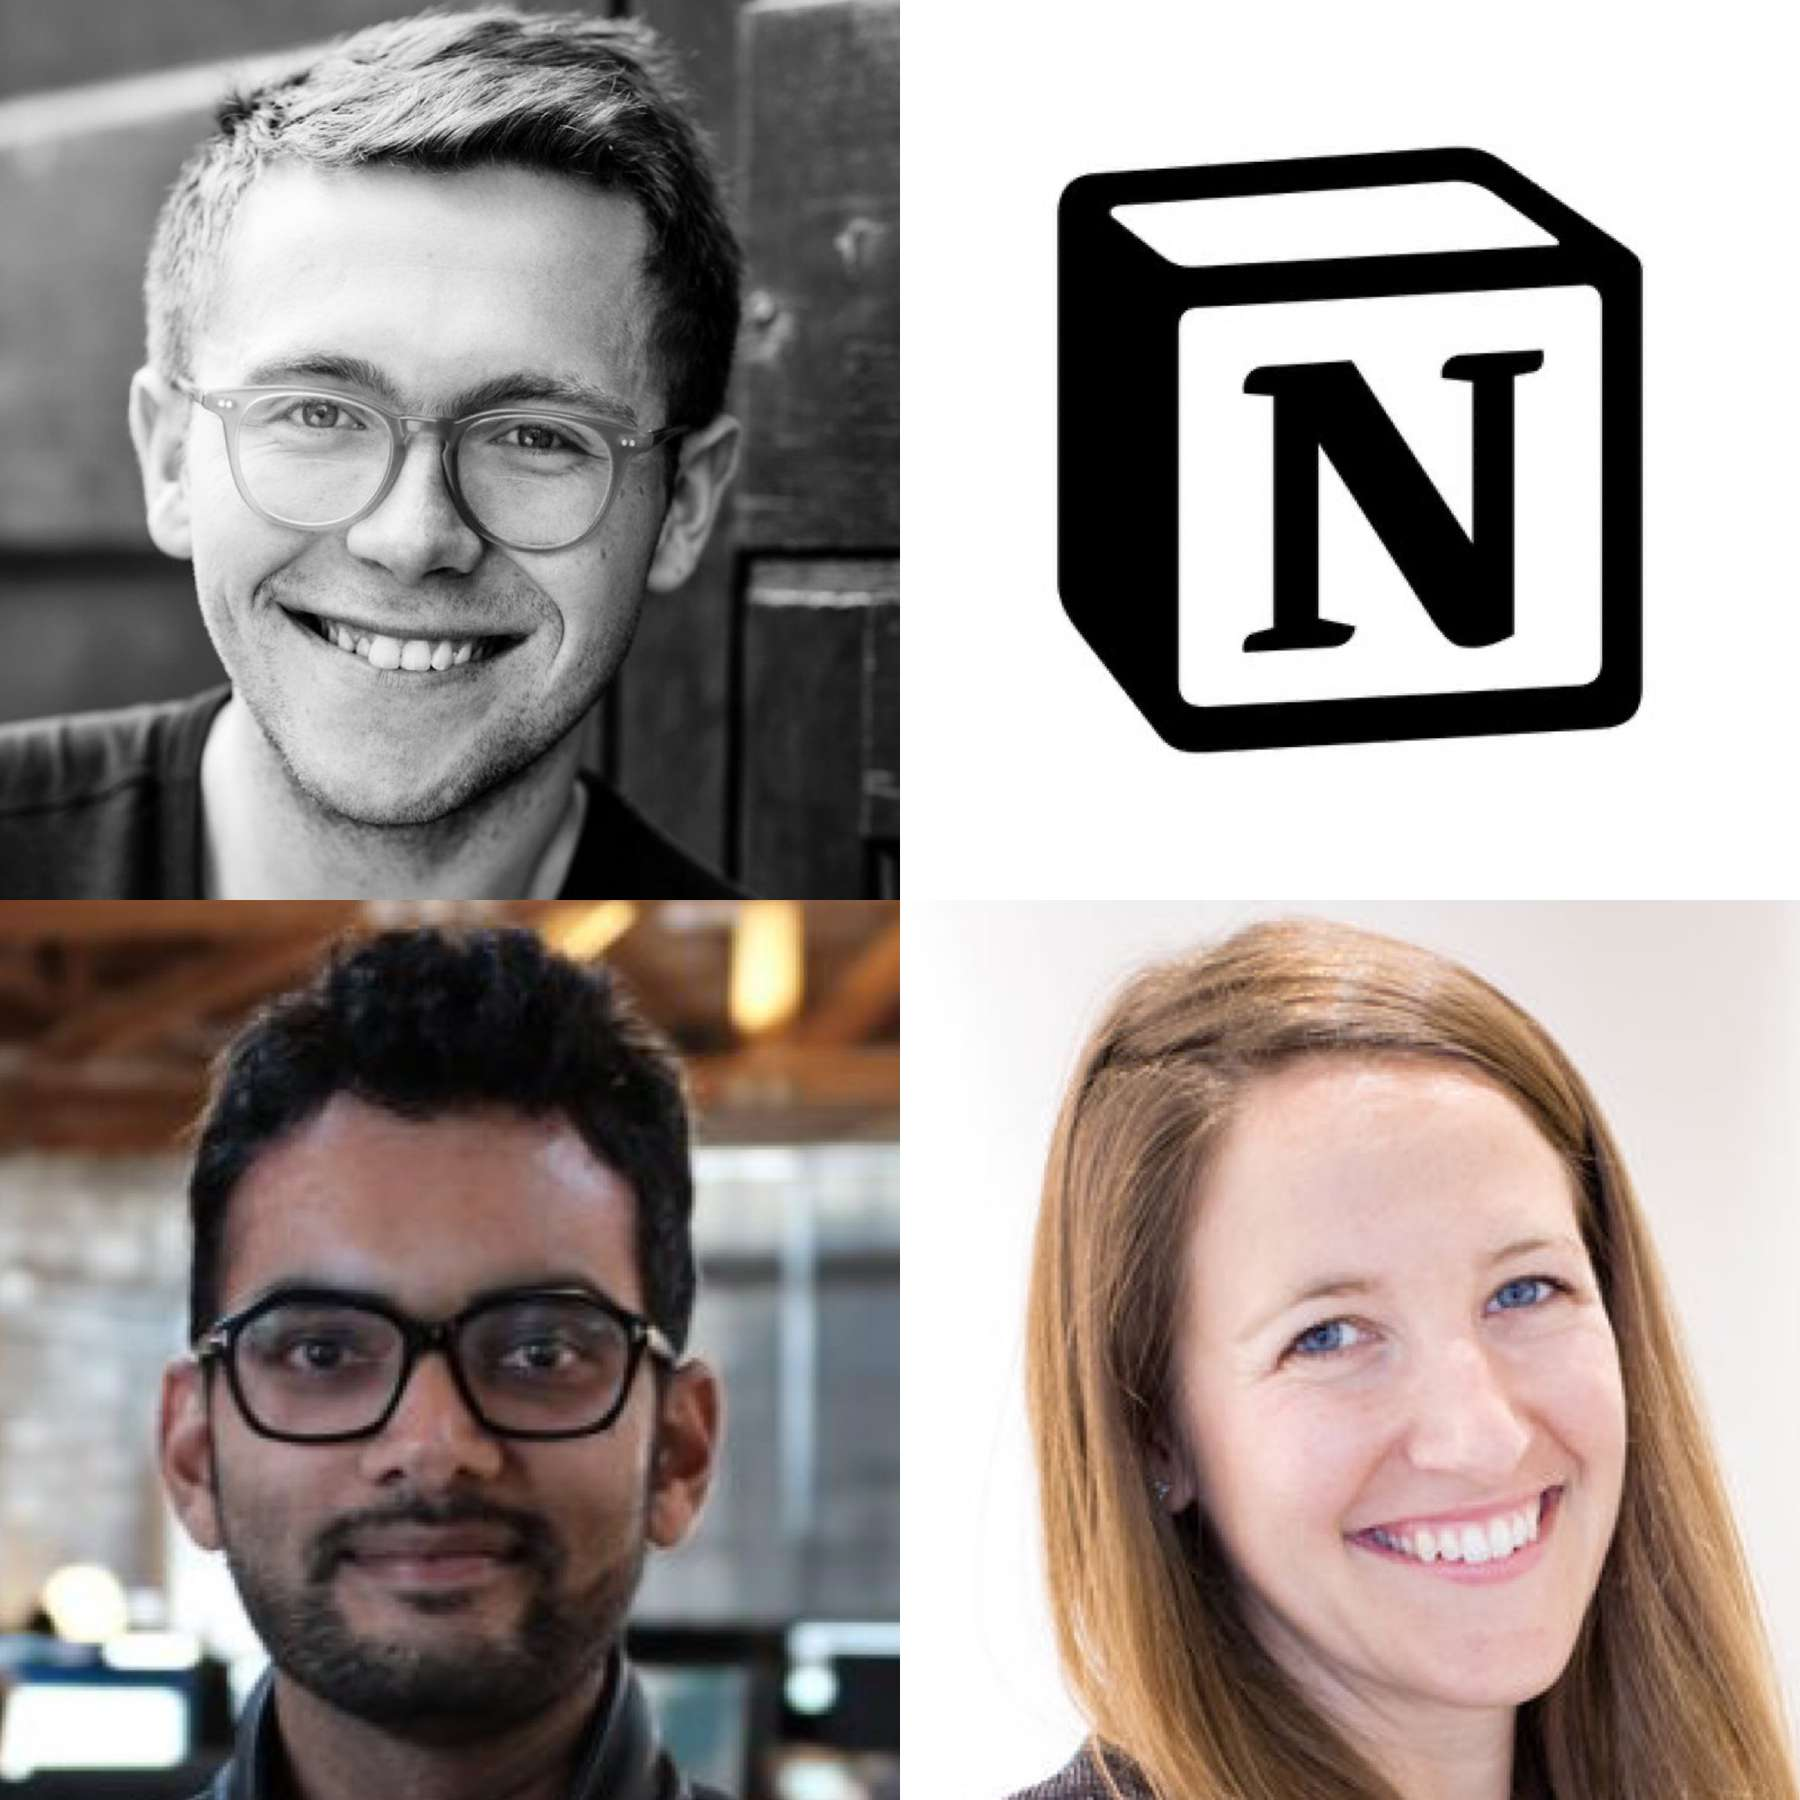 Harry Stebbings of 20VC, Akshay Kothari of Notion, and Sarah Cannon of Index Ventures